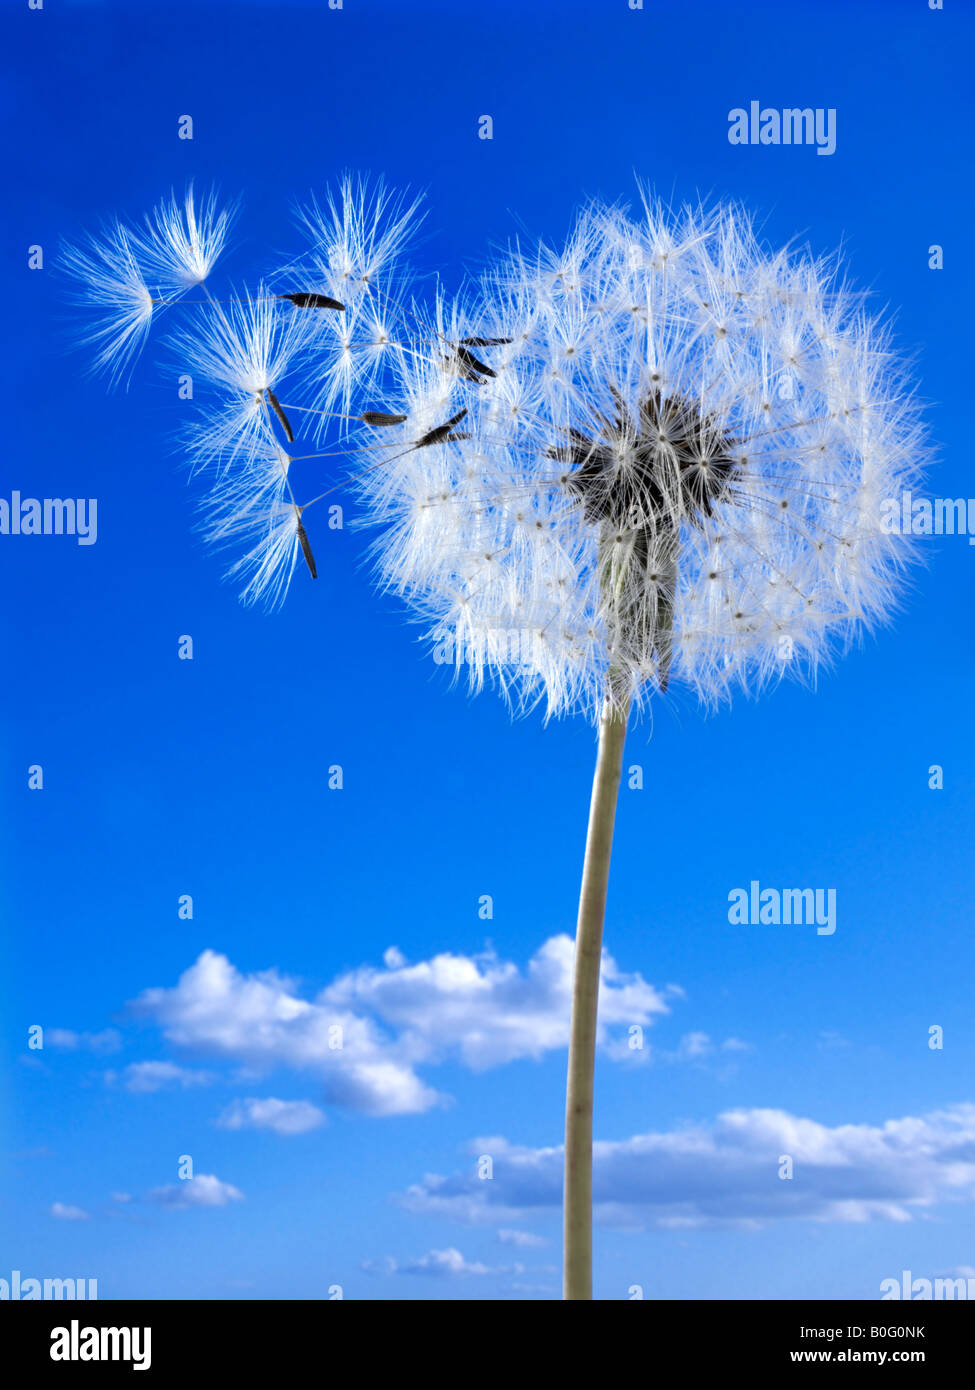 Dandelion Clock against a blue sky Photo Stock